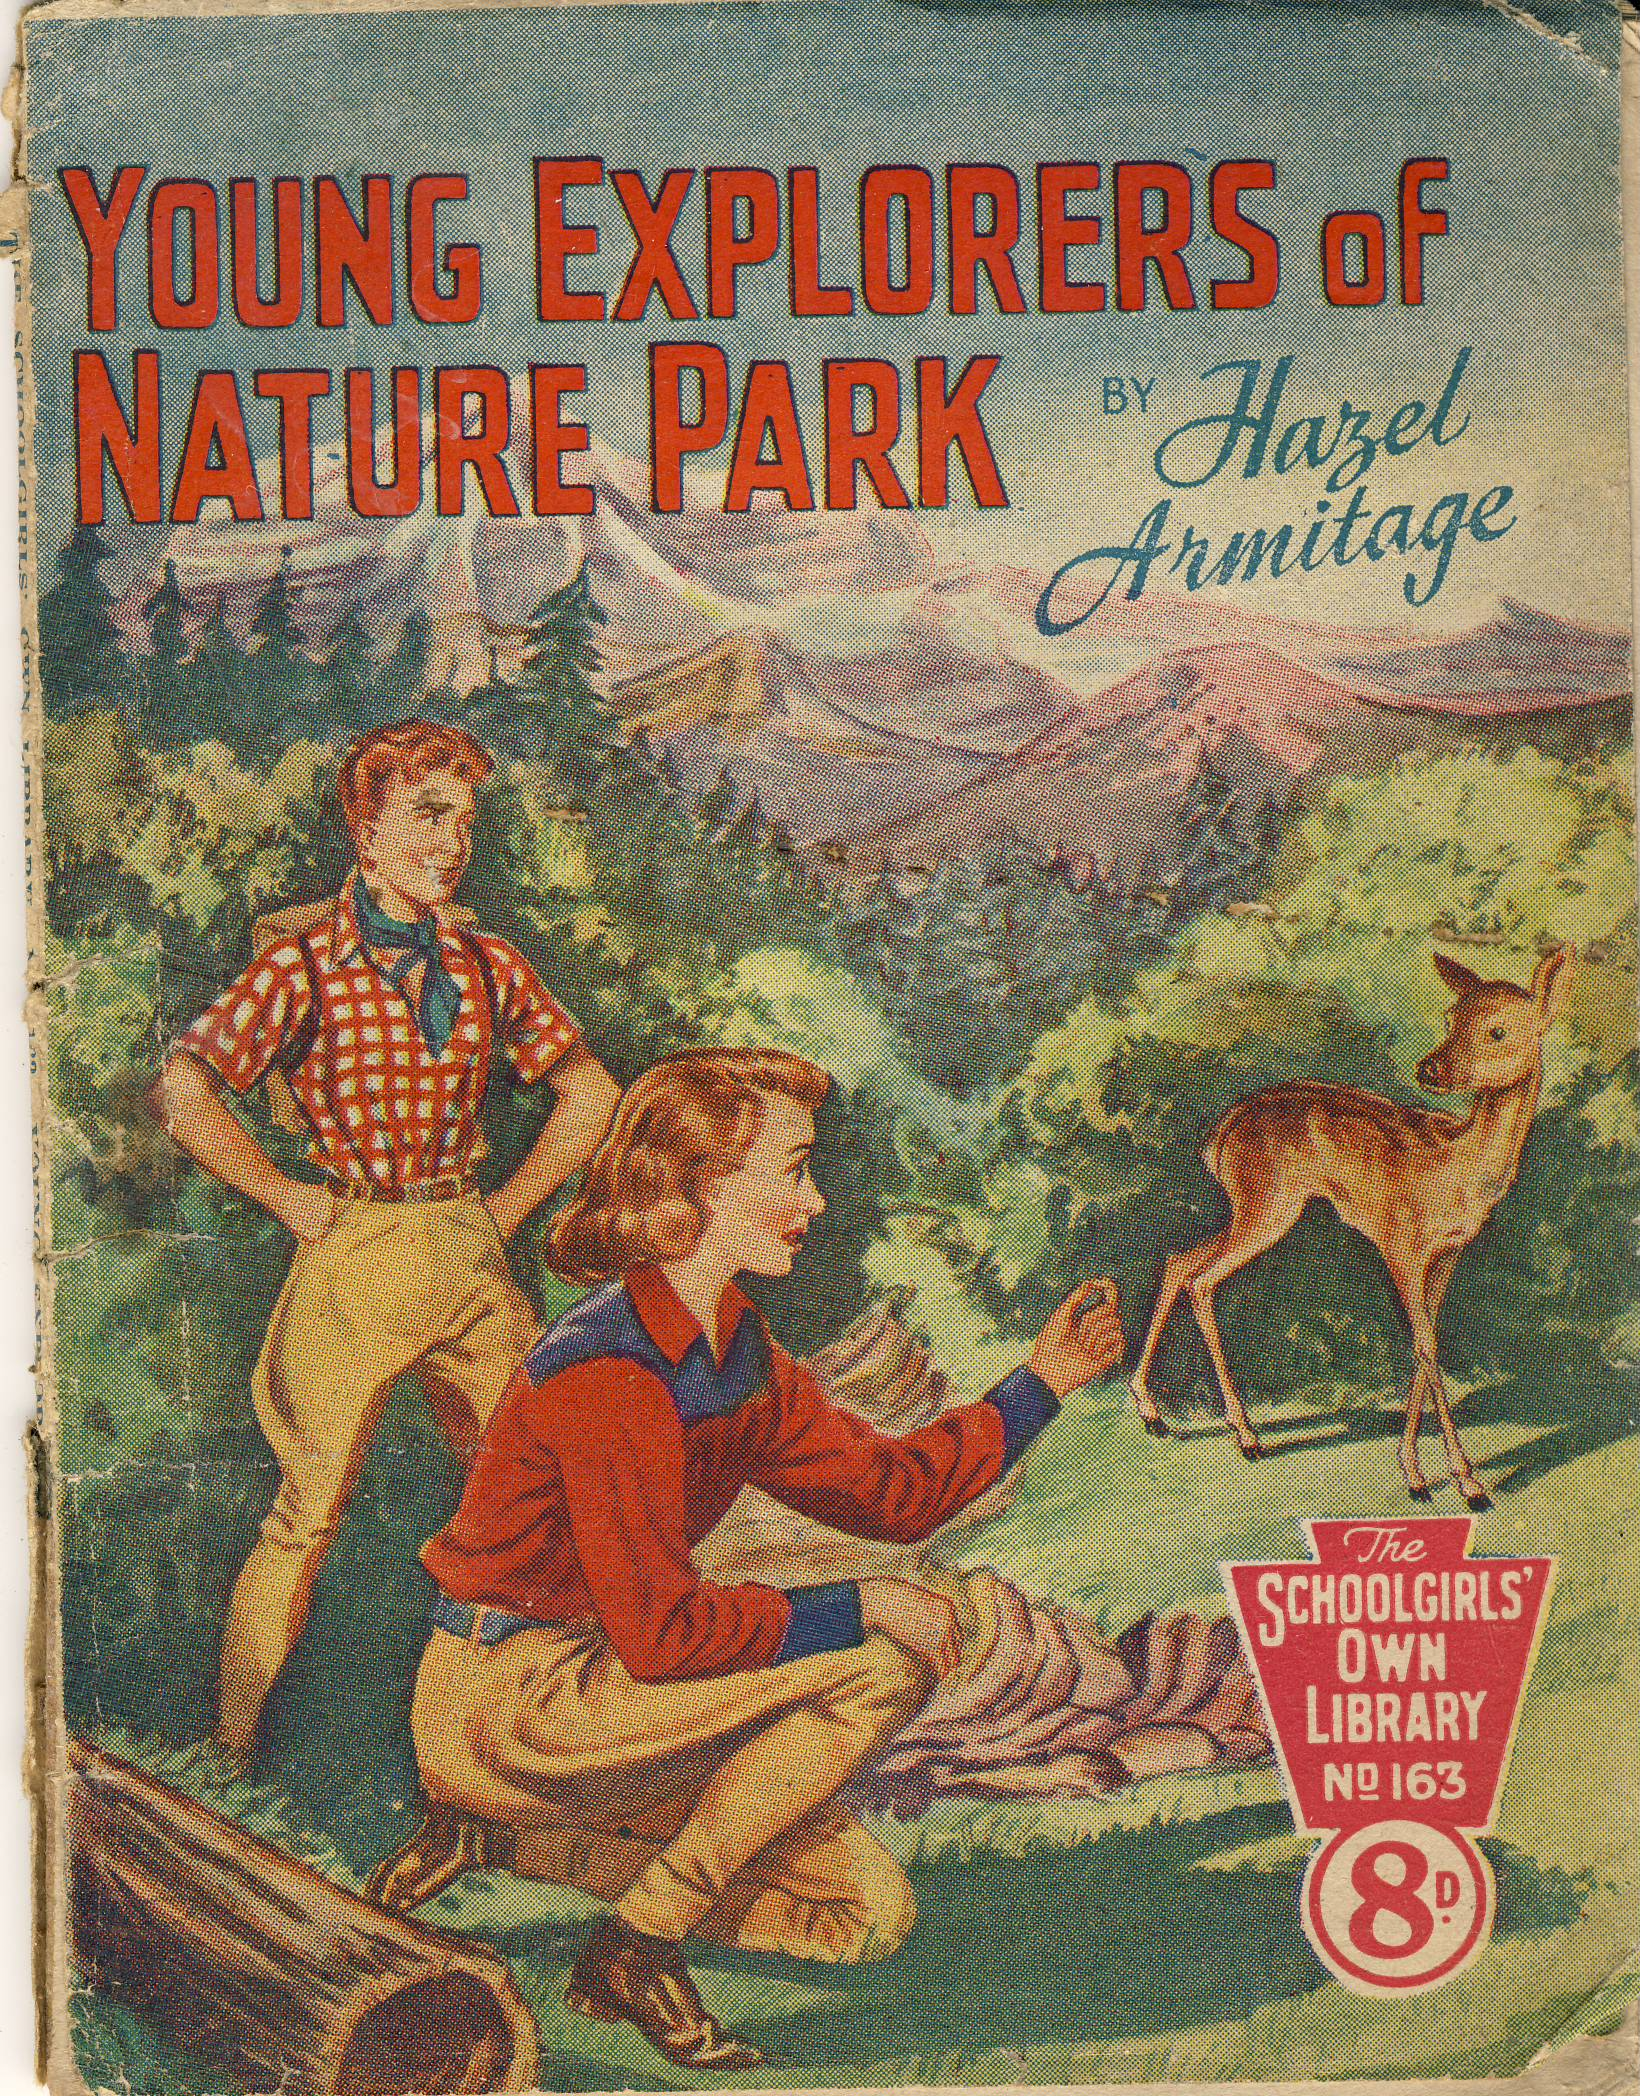 Young Explorers of Nature Park by Hazel Armitage SCHOOLGIRLS OWN LIBRARY No.163 vintage magazine refS5  a pre-owned vintage item in well read poor condition. Novelty bargains from ELLISDONS High Holborn London advert on back cover.